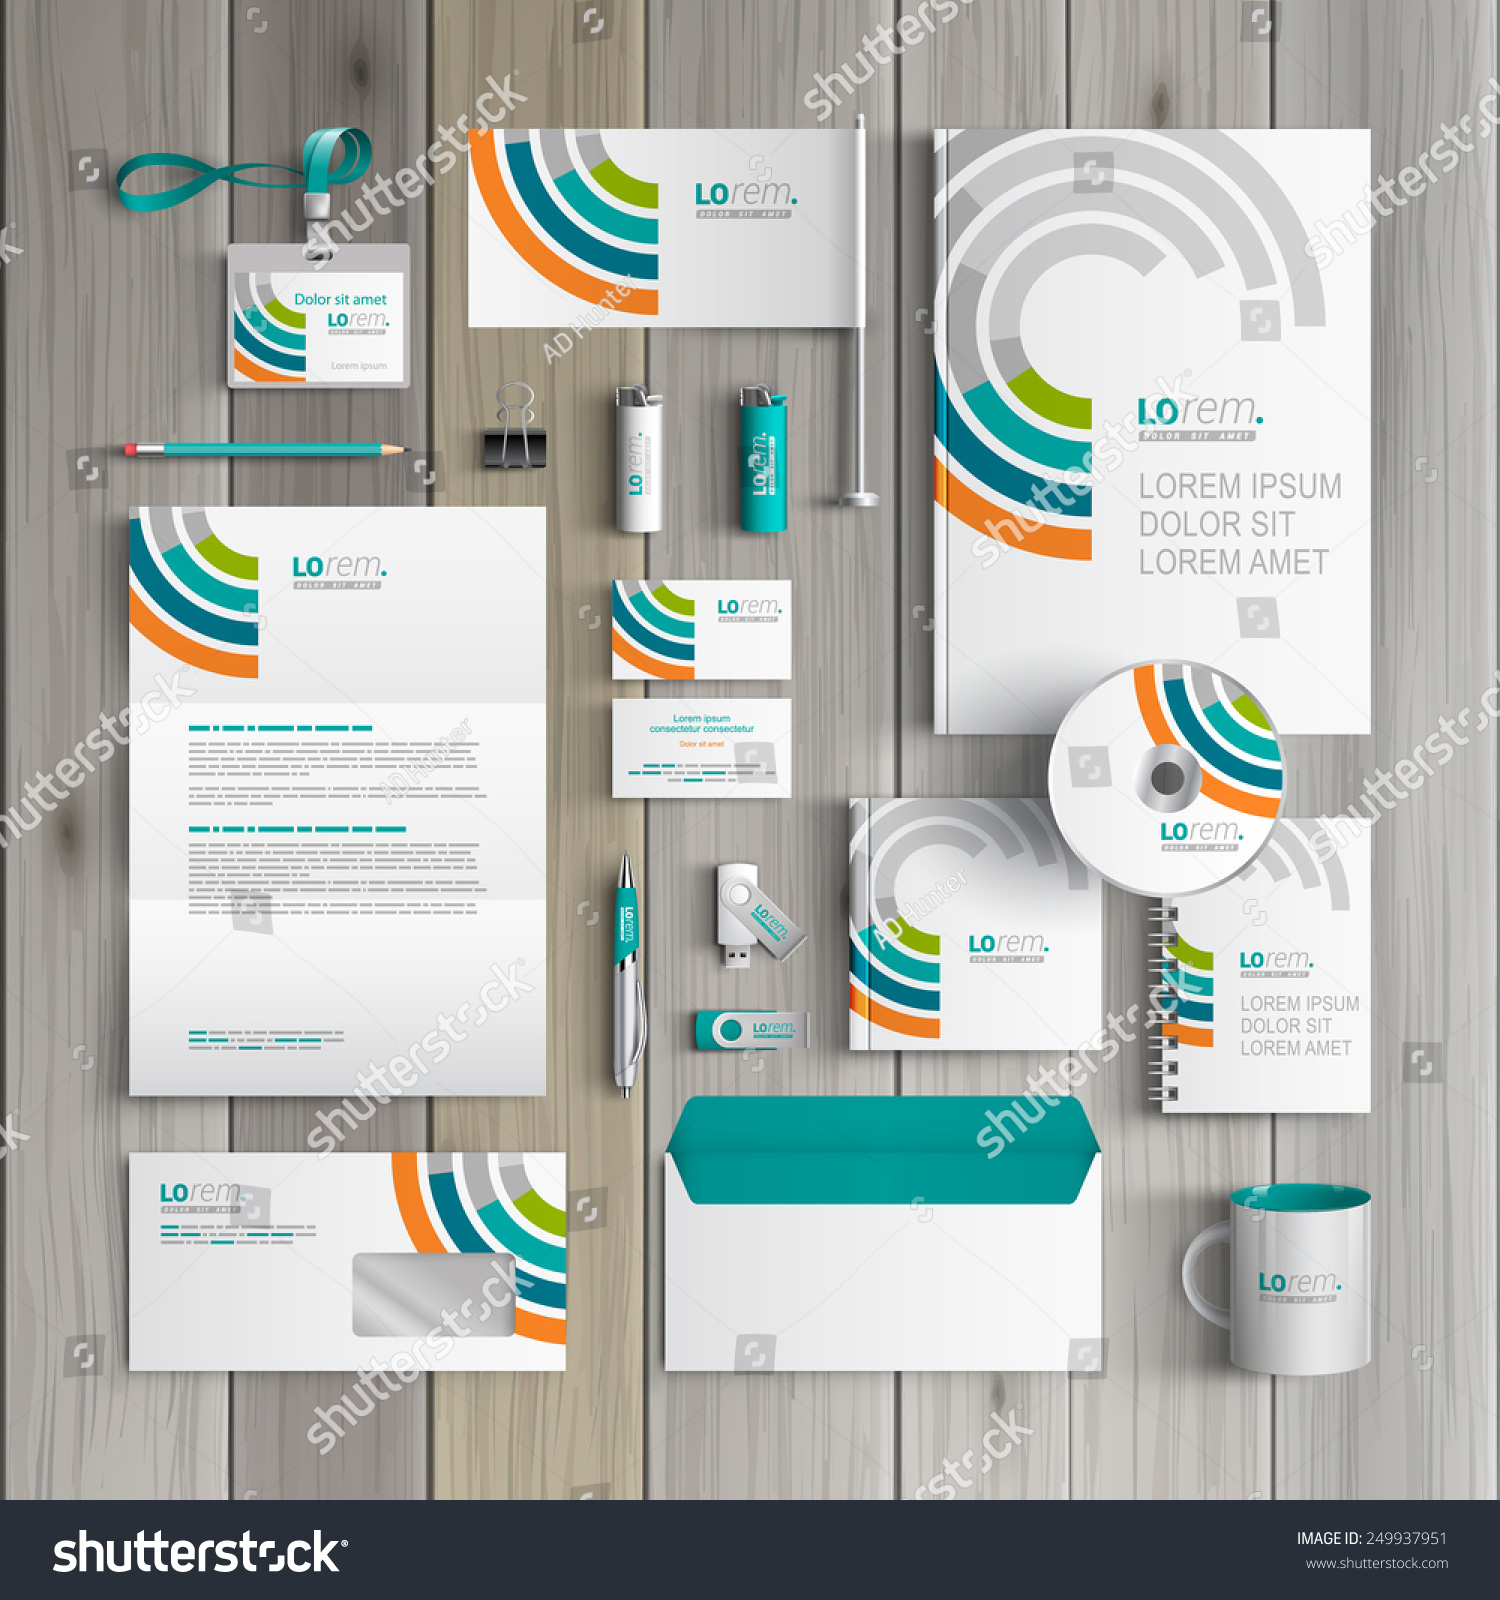 Blank Stationery And Corporate Identity Template Consist: White Corporate Identity Template Design Round Stock